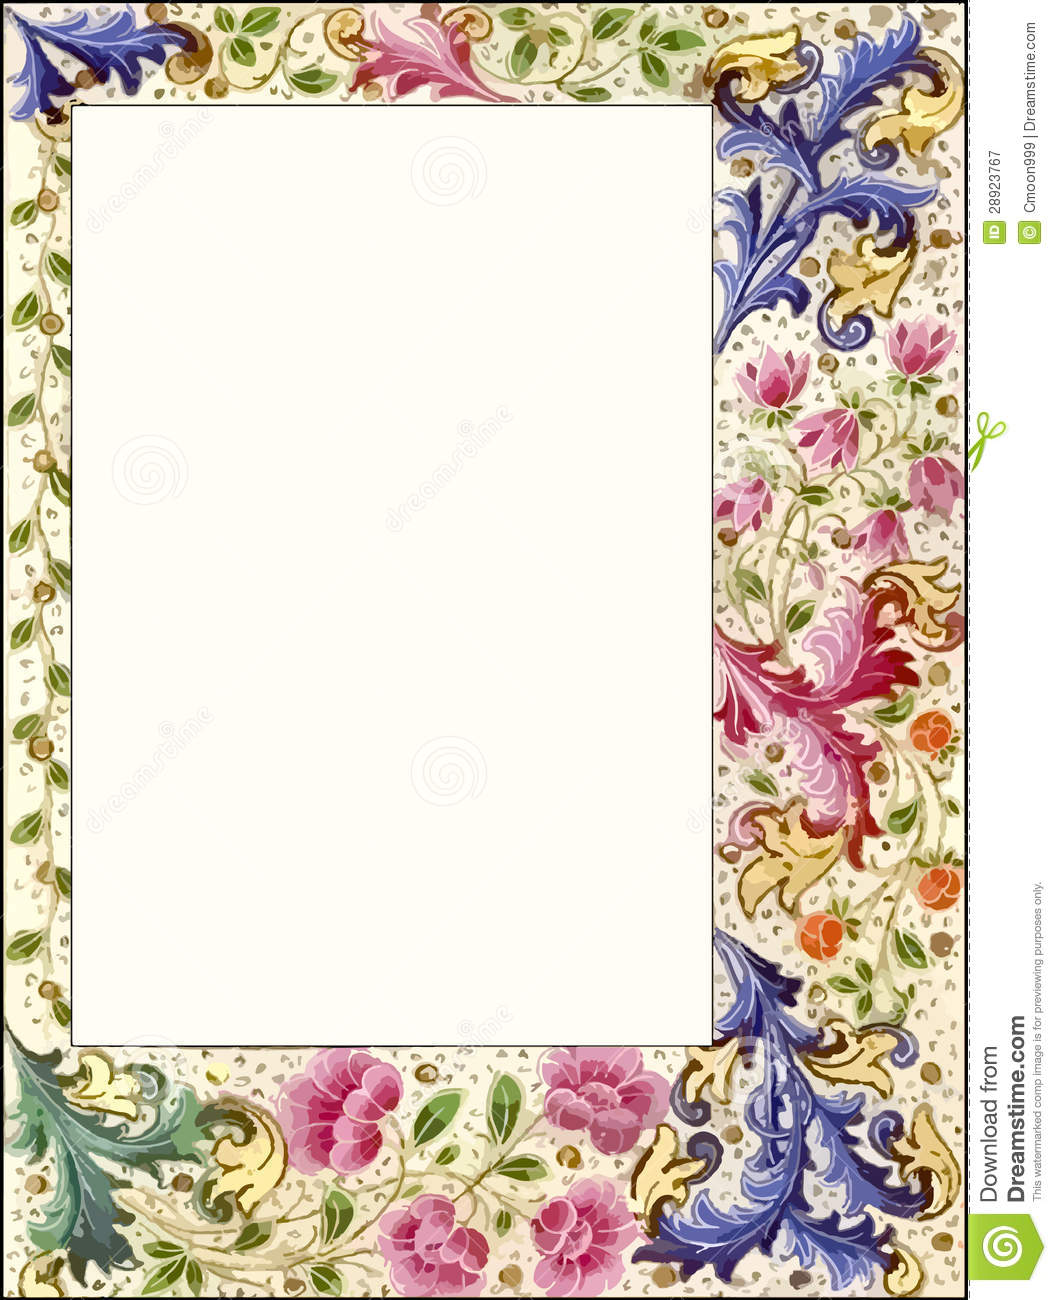 Royalty Free Stock Photography: Vintage Style Floral Scrapbook Frame ...